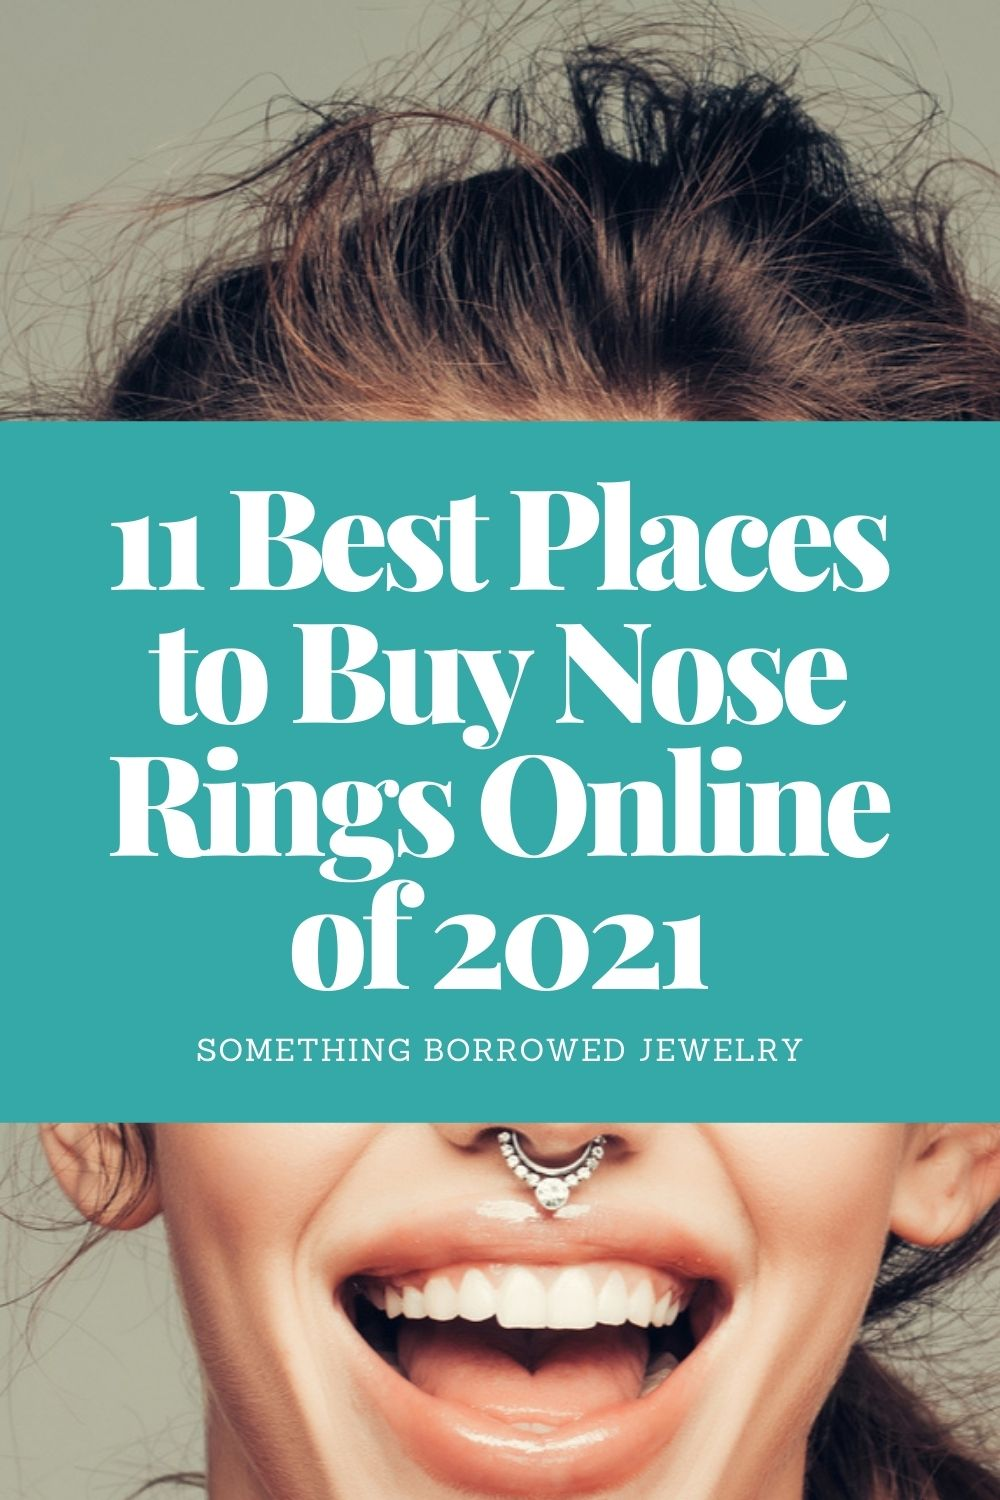 11 Best Places to Buy Nose Rings Online of 2021 pin